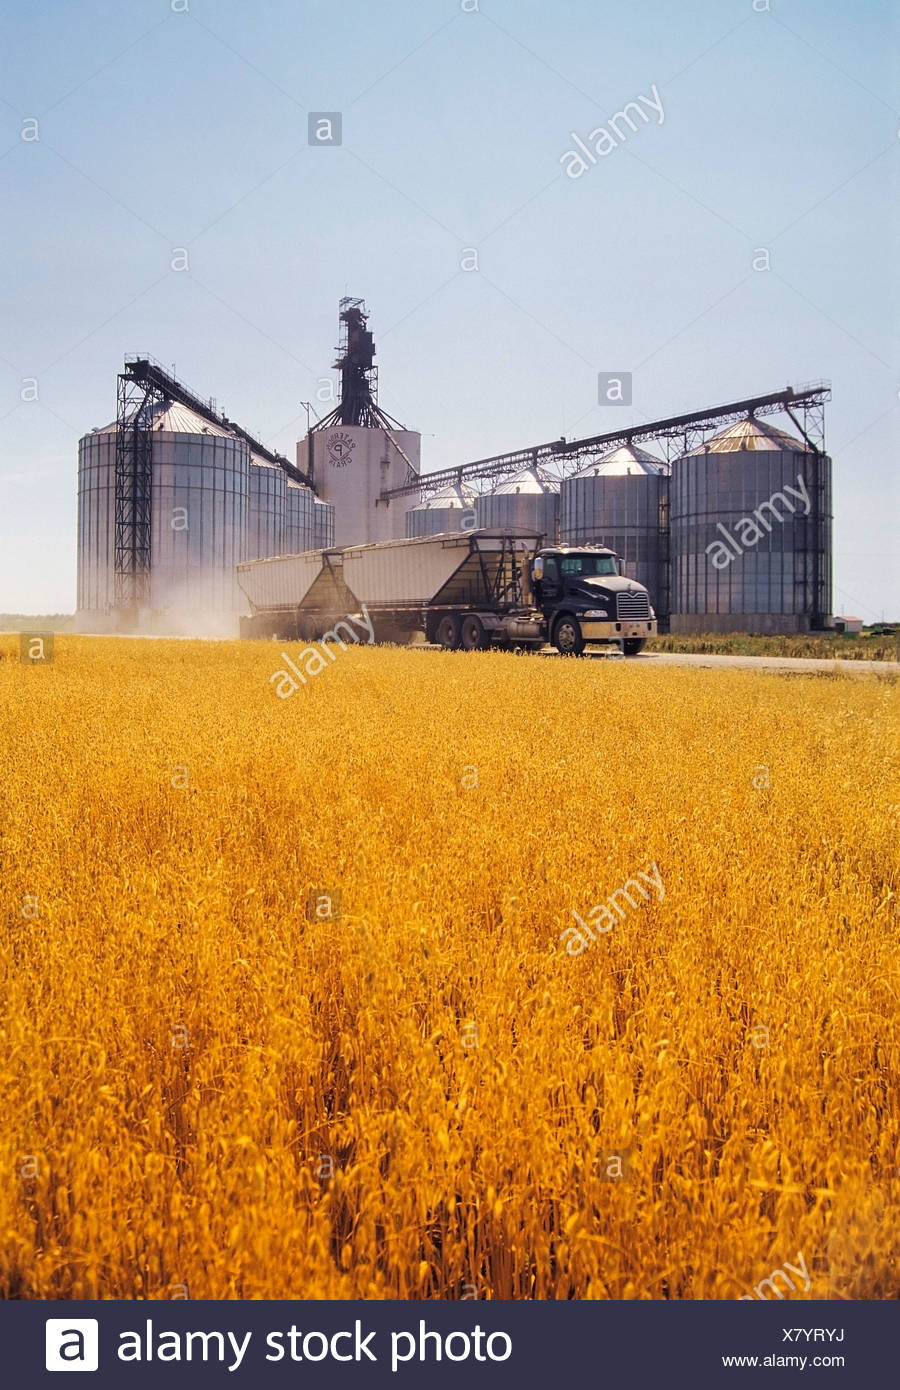 A truck leaving a Paterson inland grain terminal after delivering a load of grain, Morris, Manitoba, Canada - Stock Image